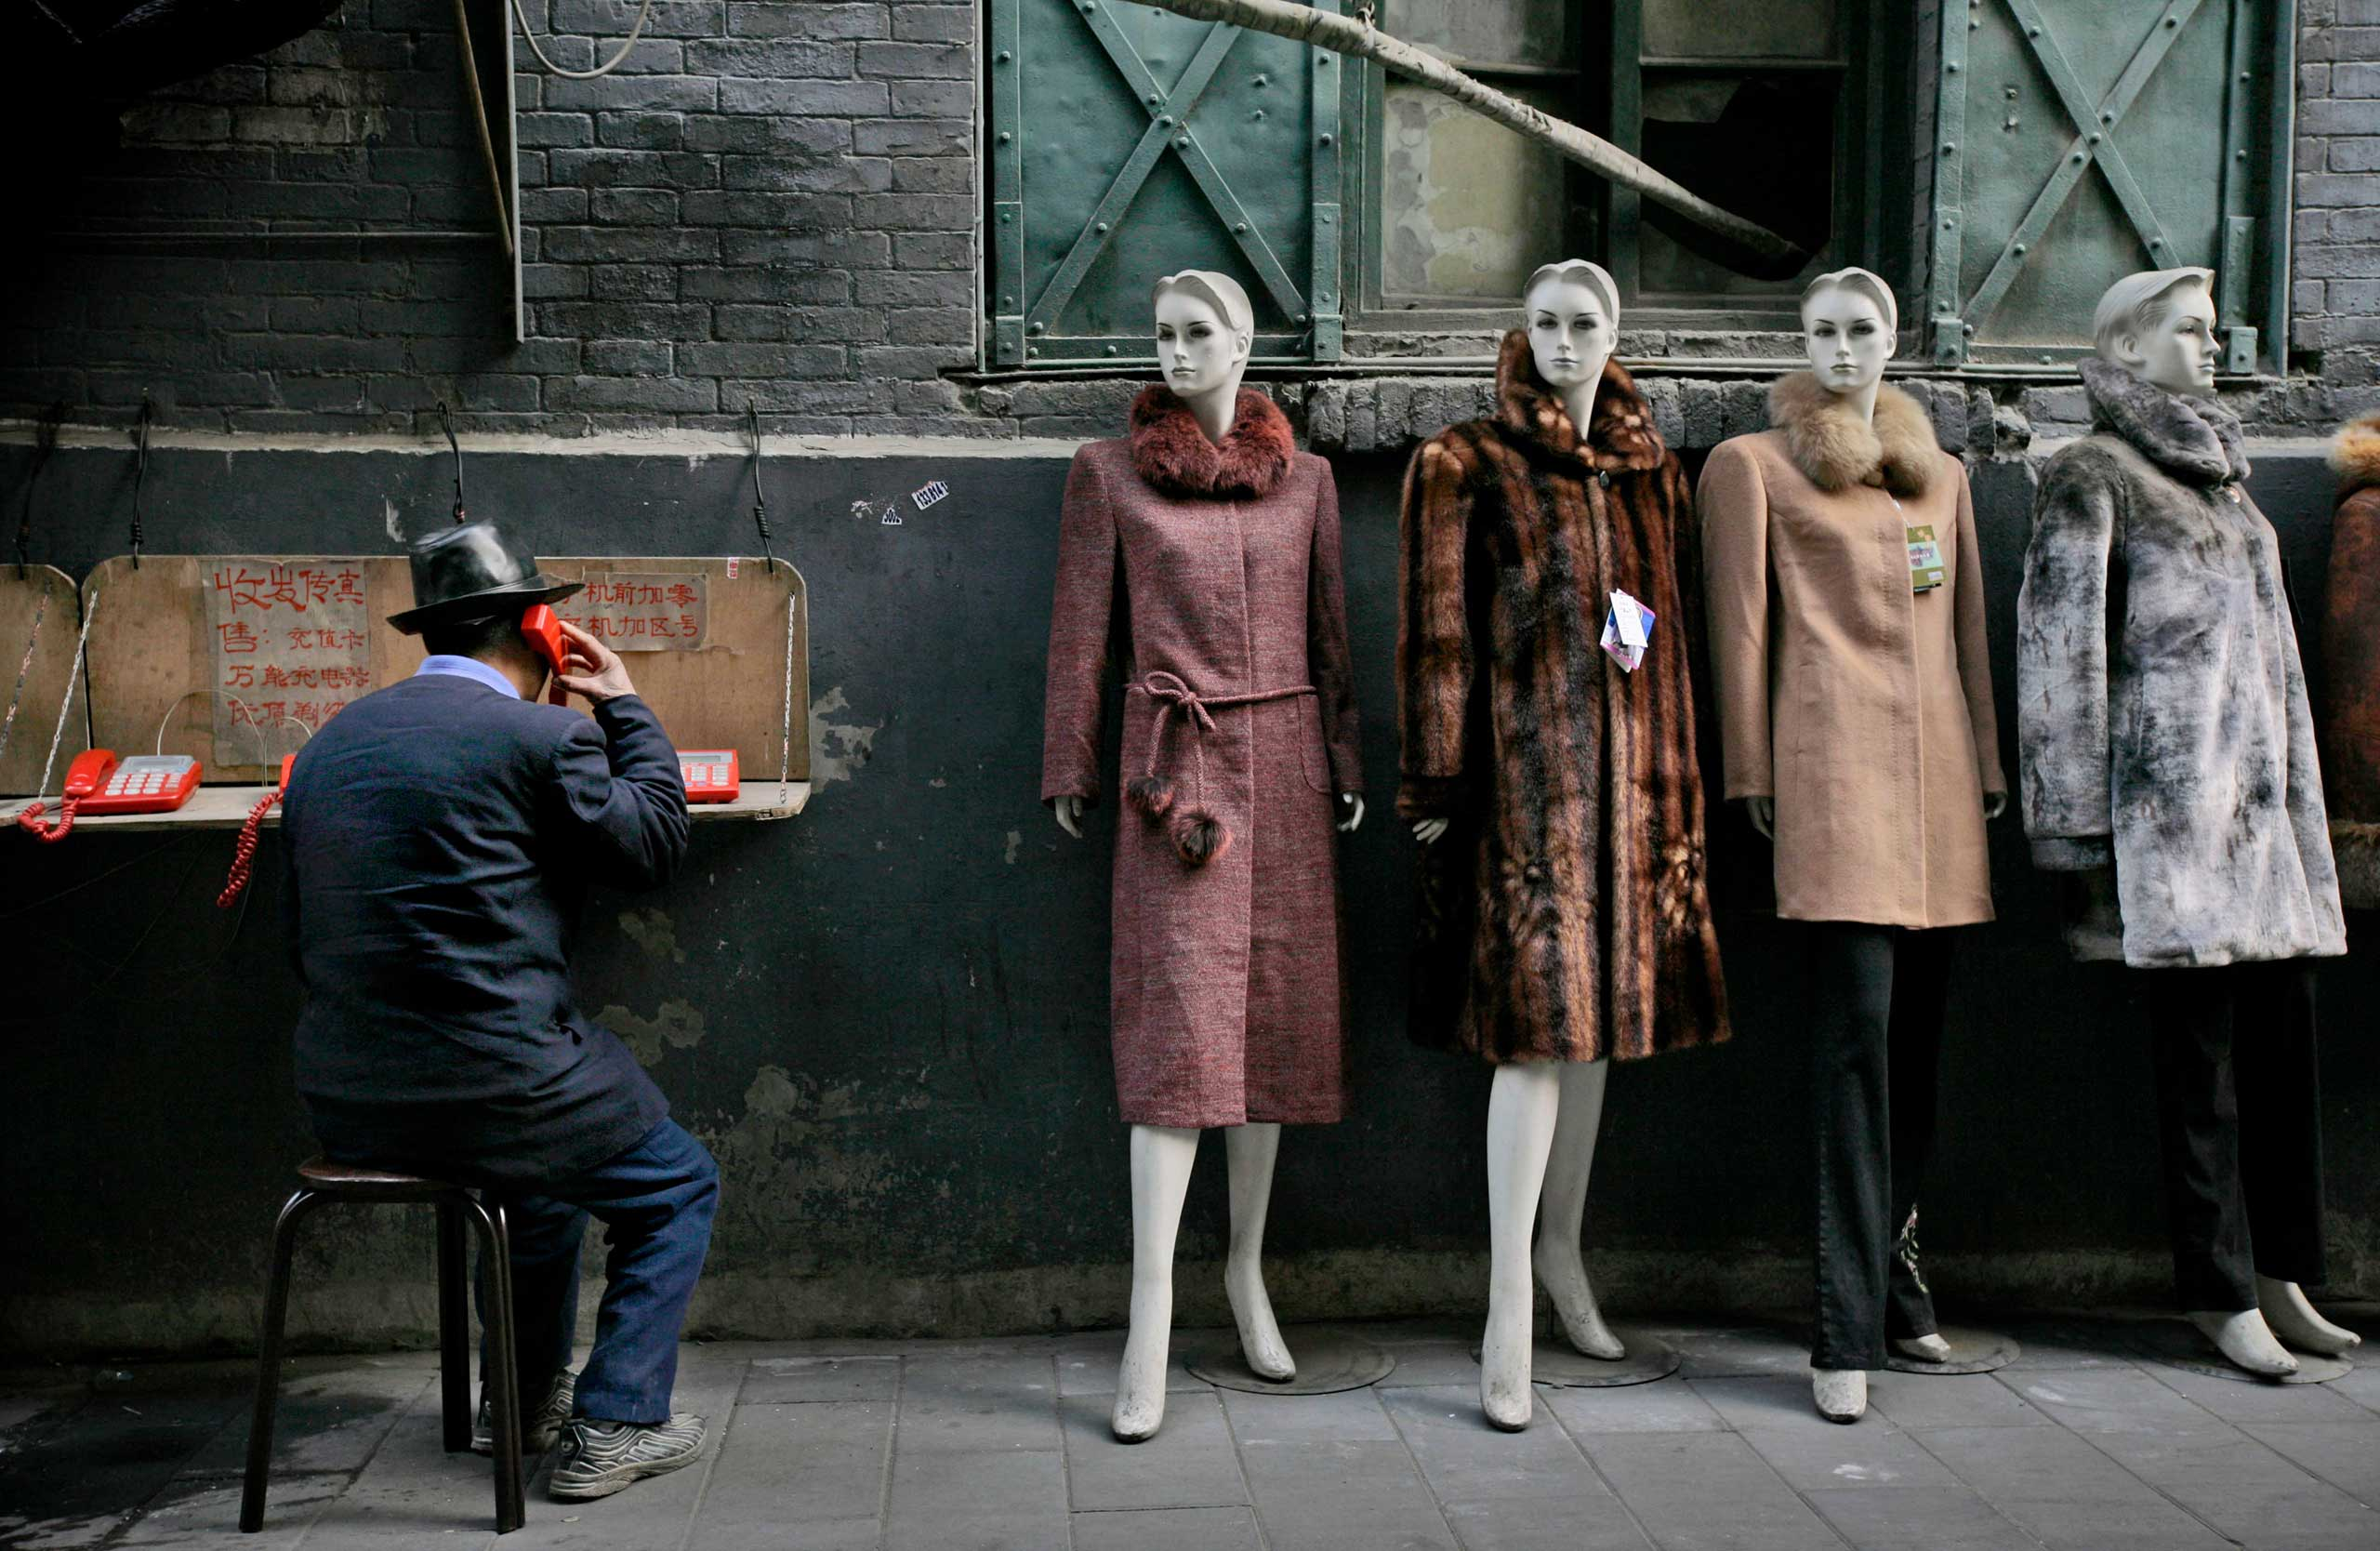 A man speaks on a pay phone next to a clothing shop at a market in Beijing.